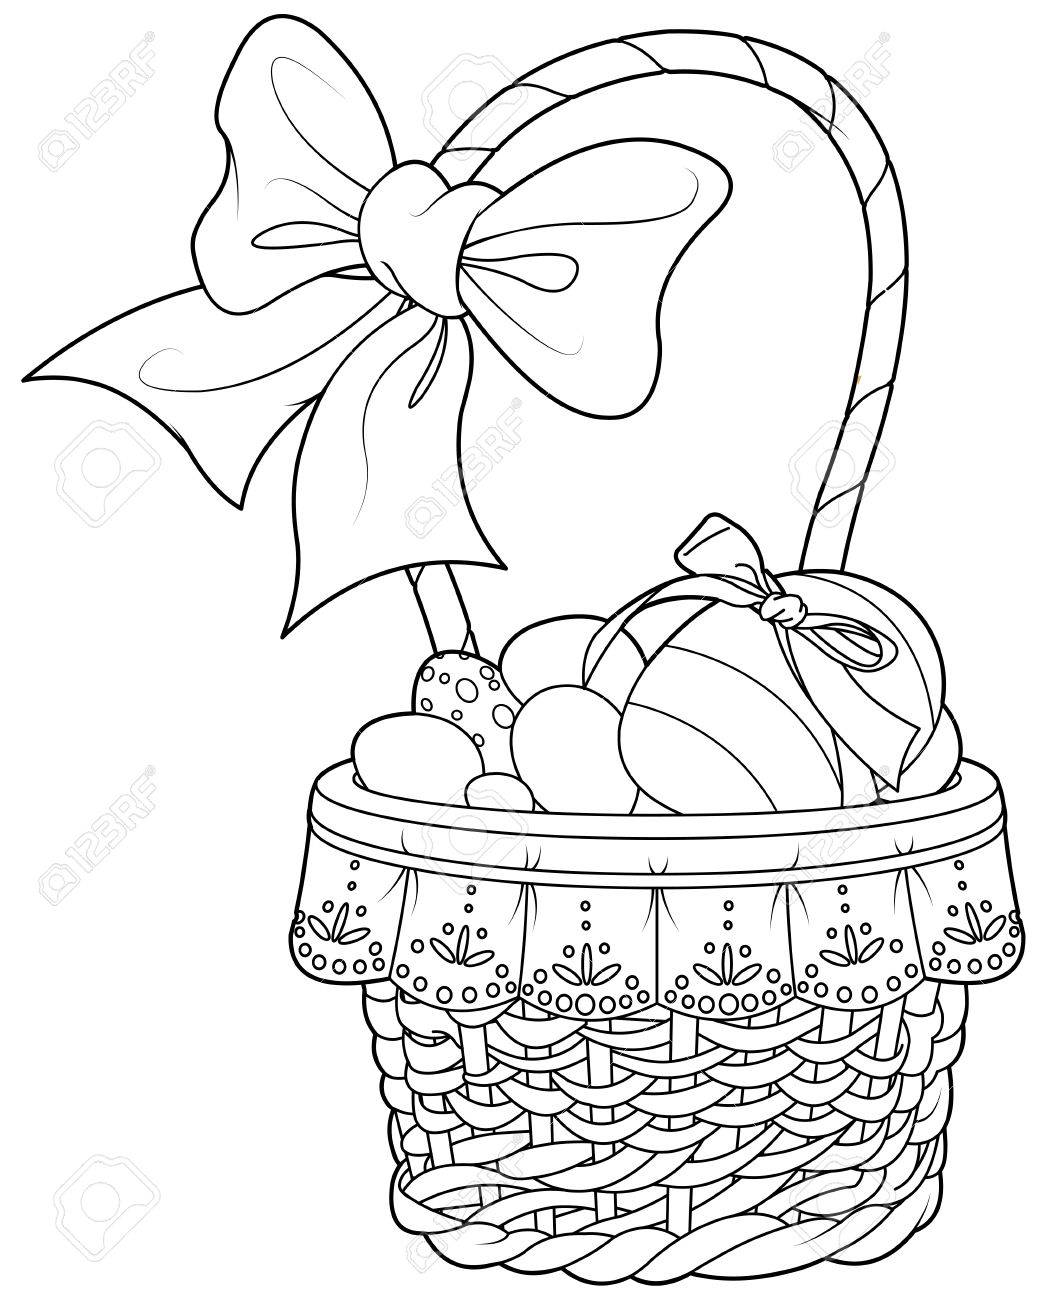 Coloring Page Pretty Easter Basket Full Of Eggs Royalty Free ...